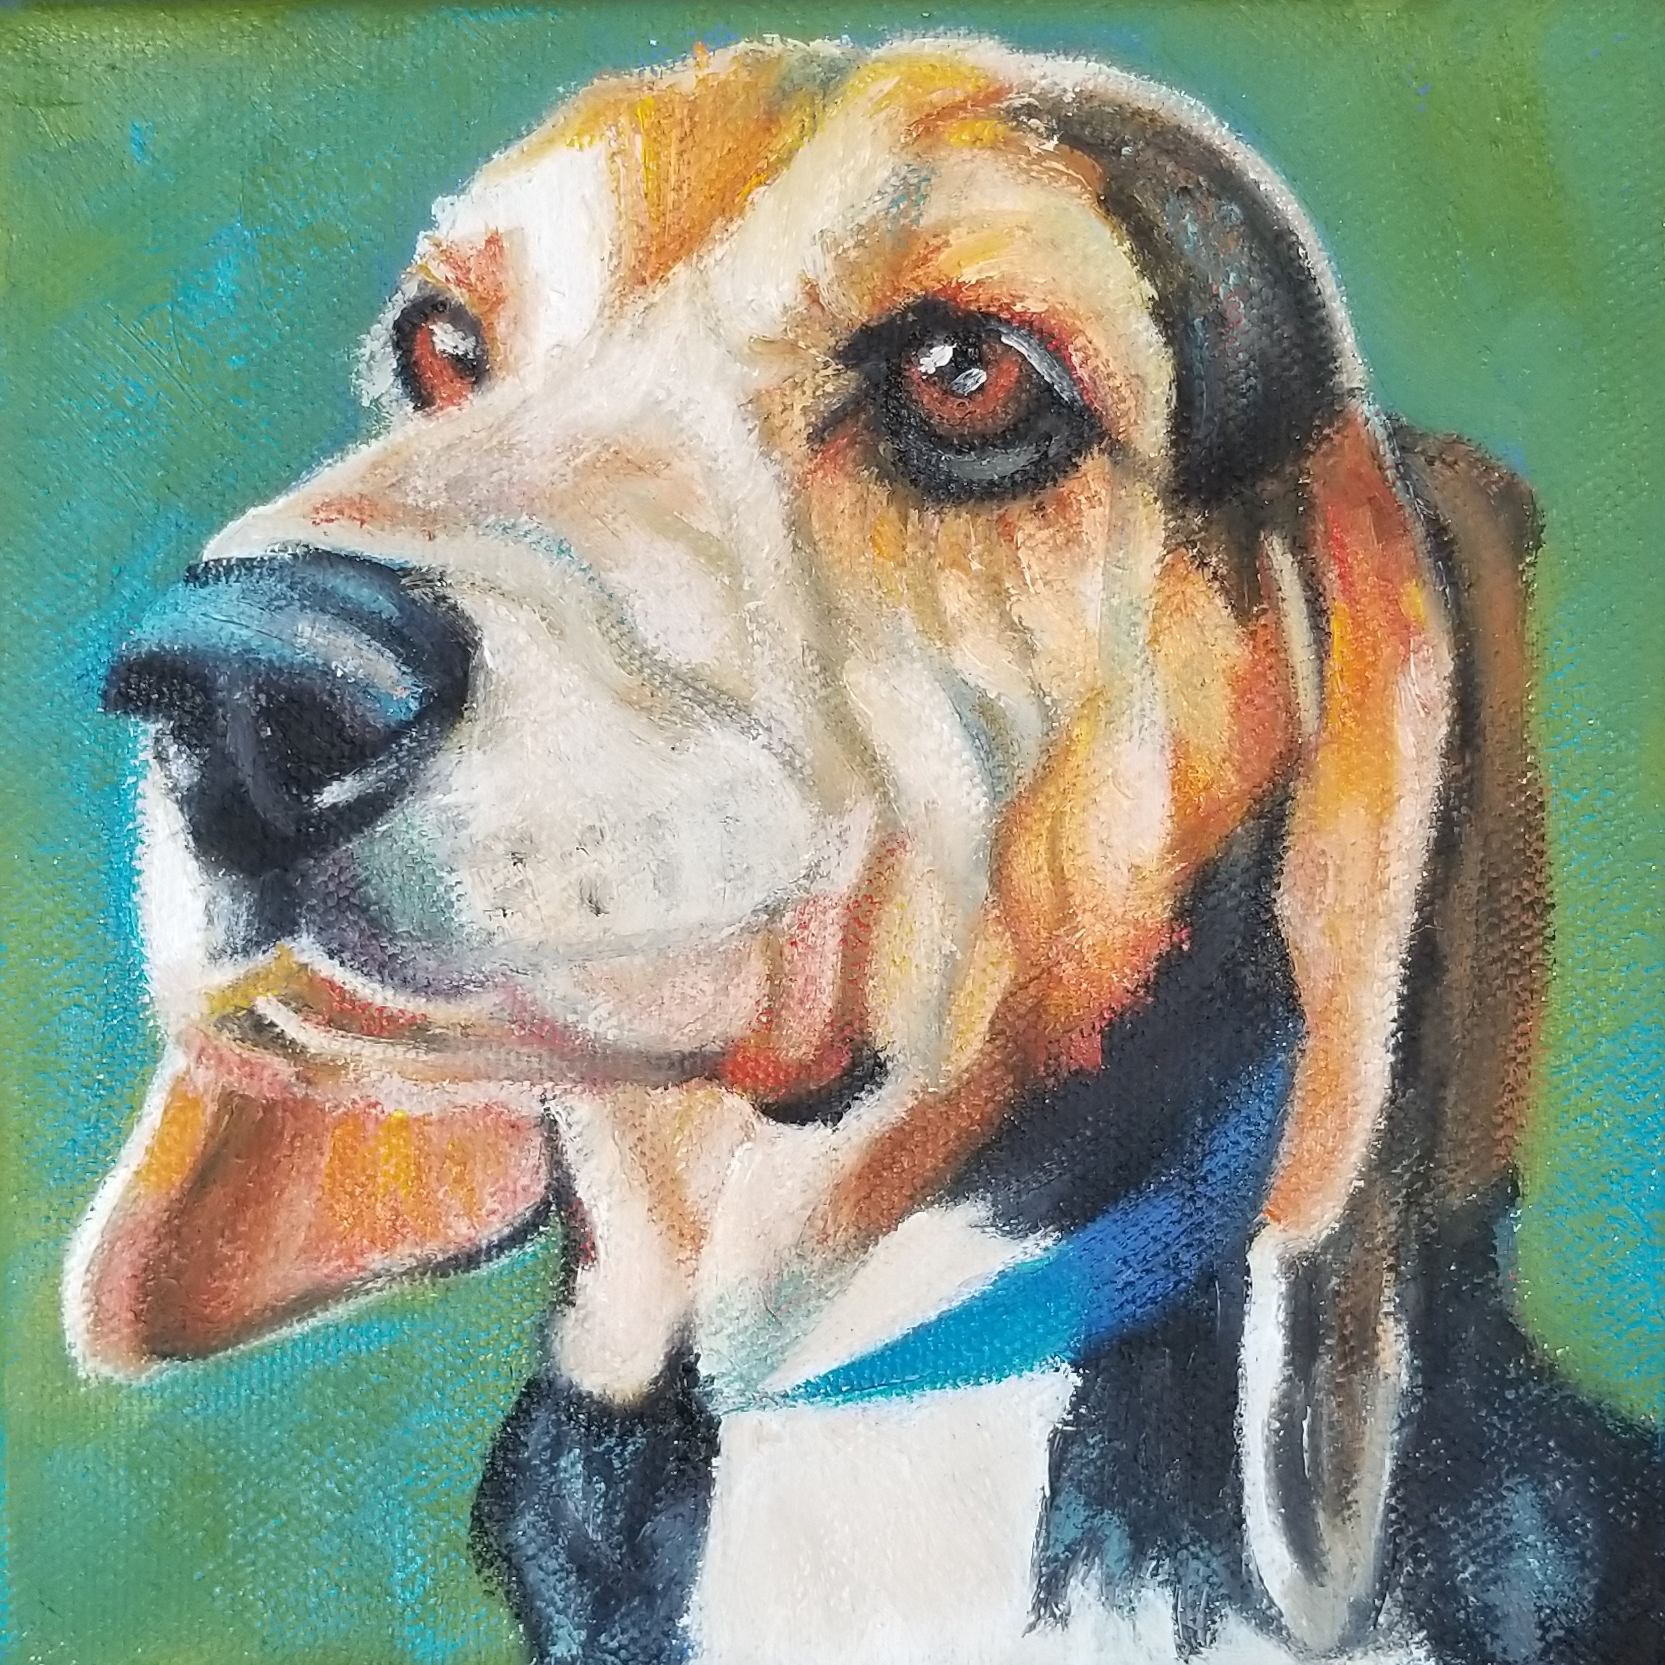 Custom portrait of Pops, the Beagle.